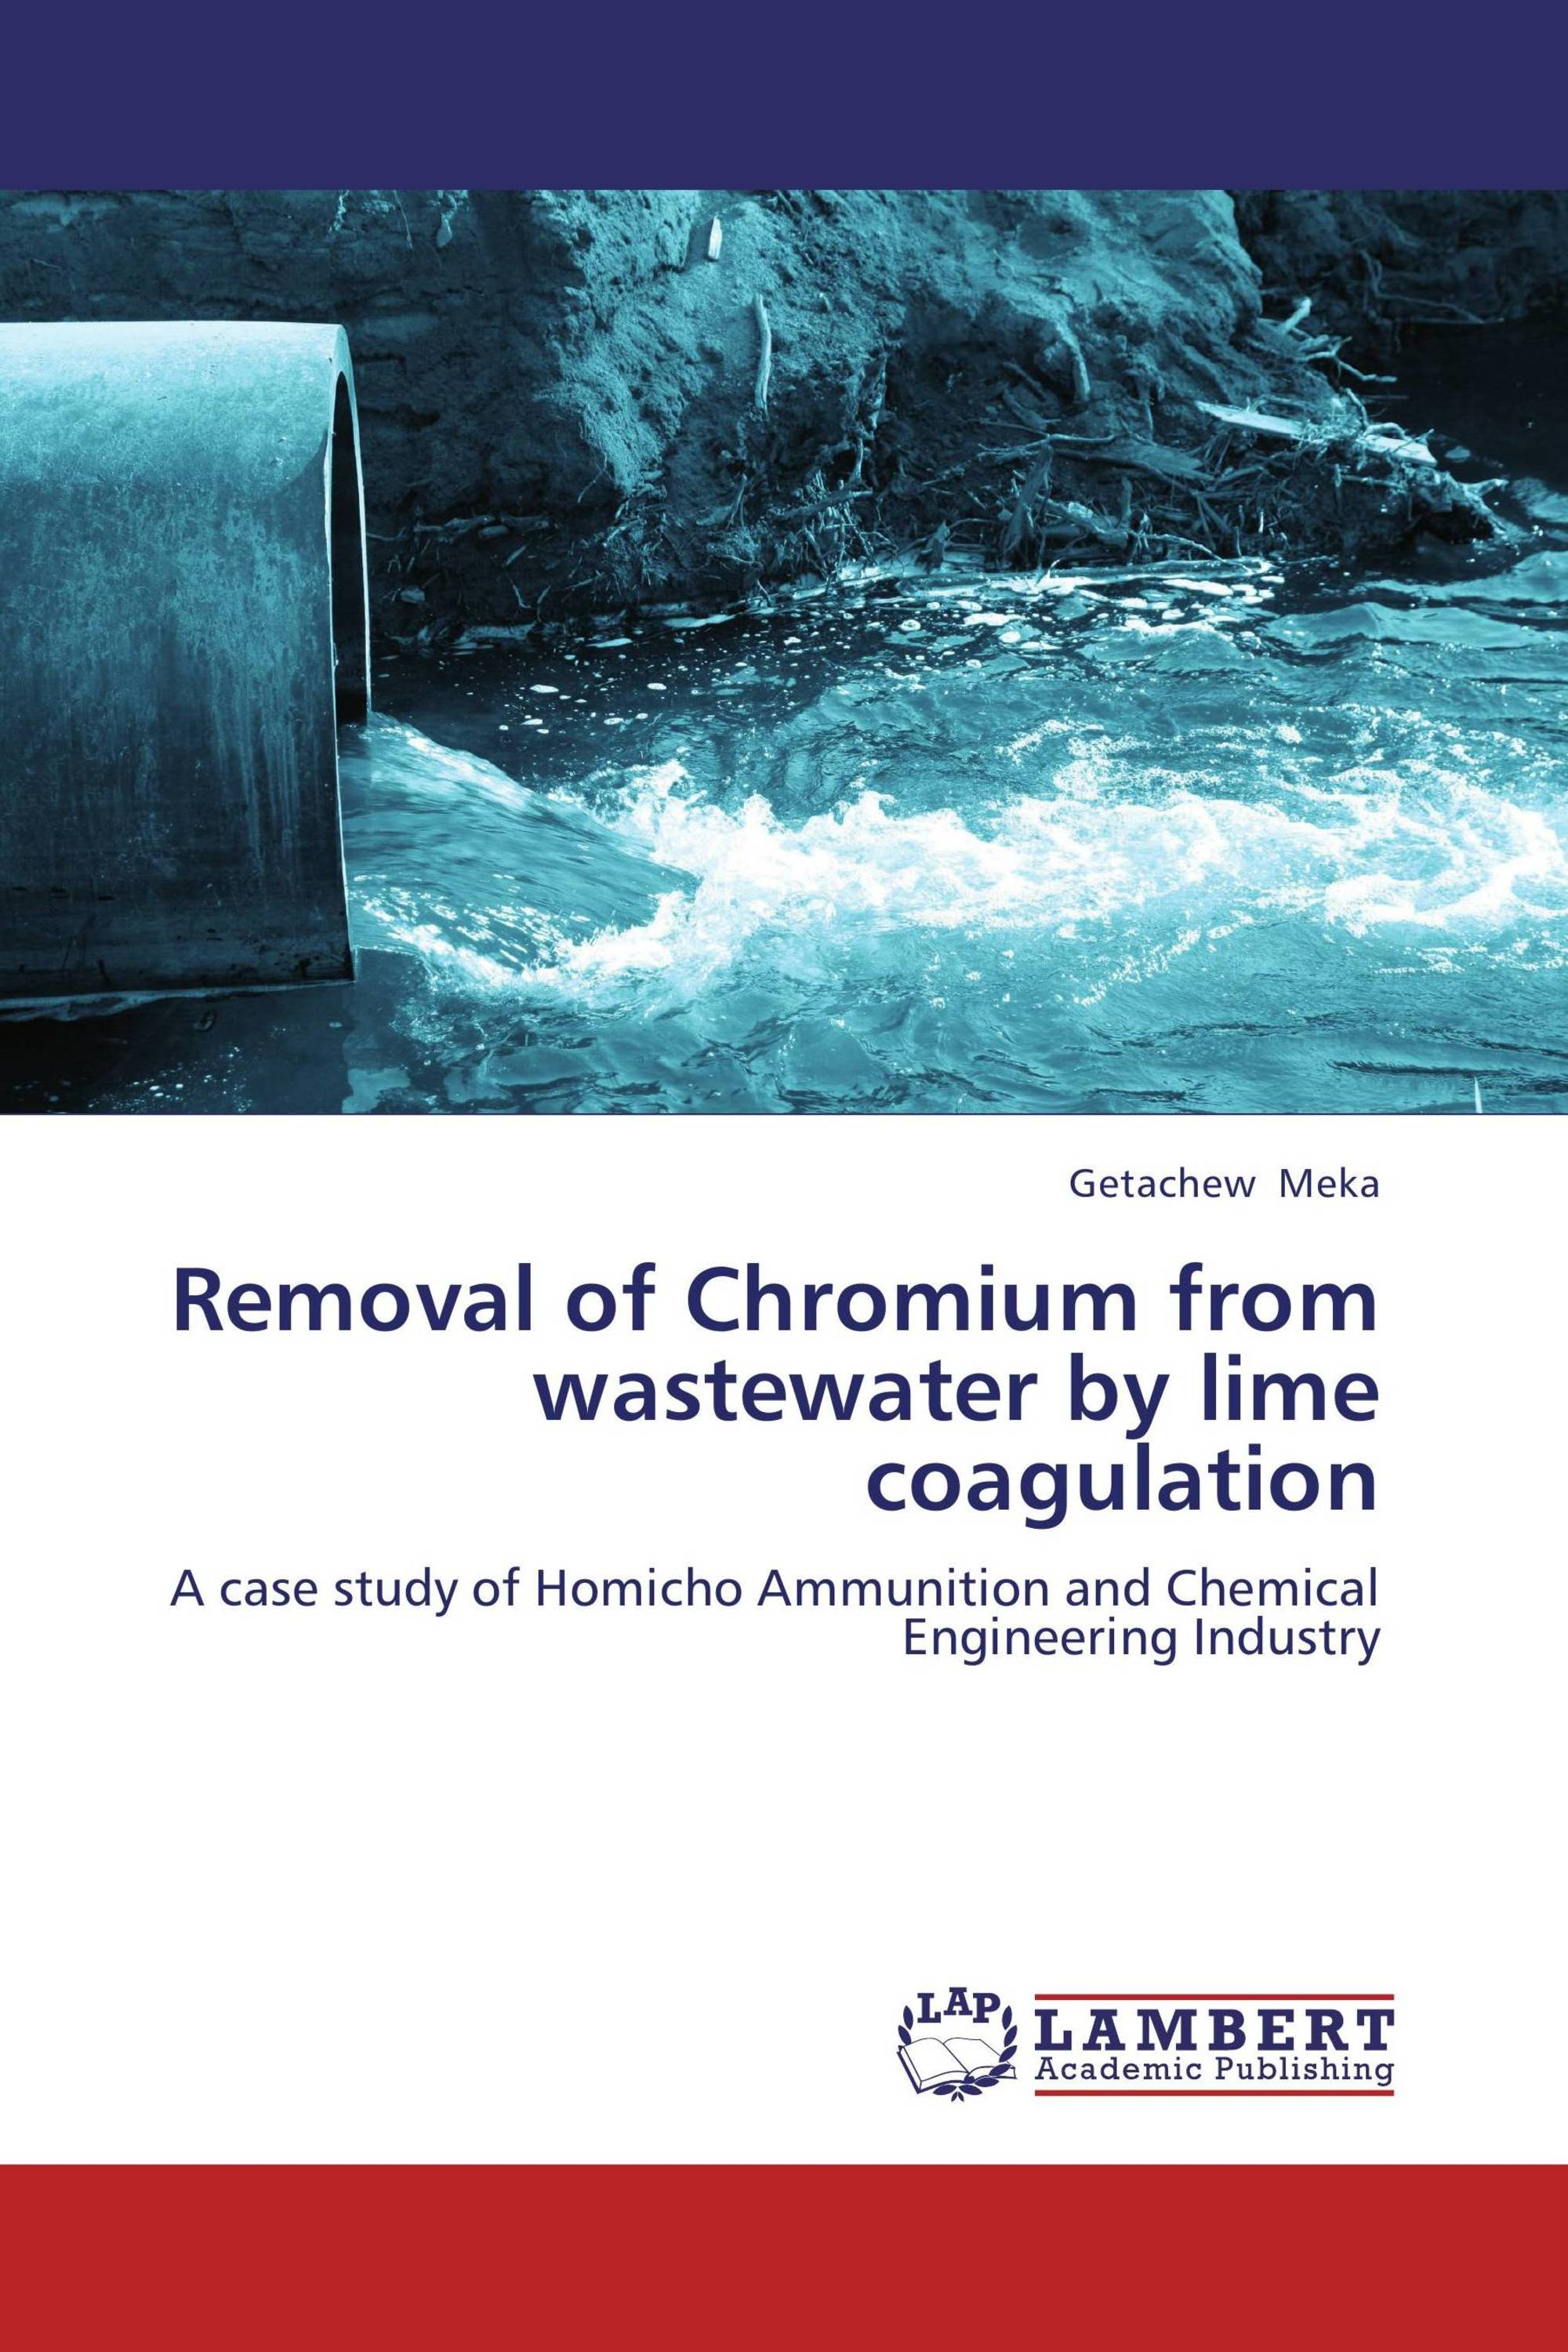 removal of chromium from wastewater by lime coagulation